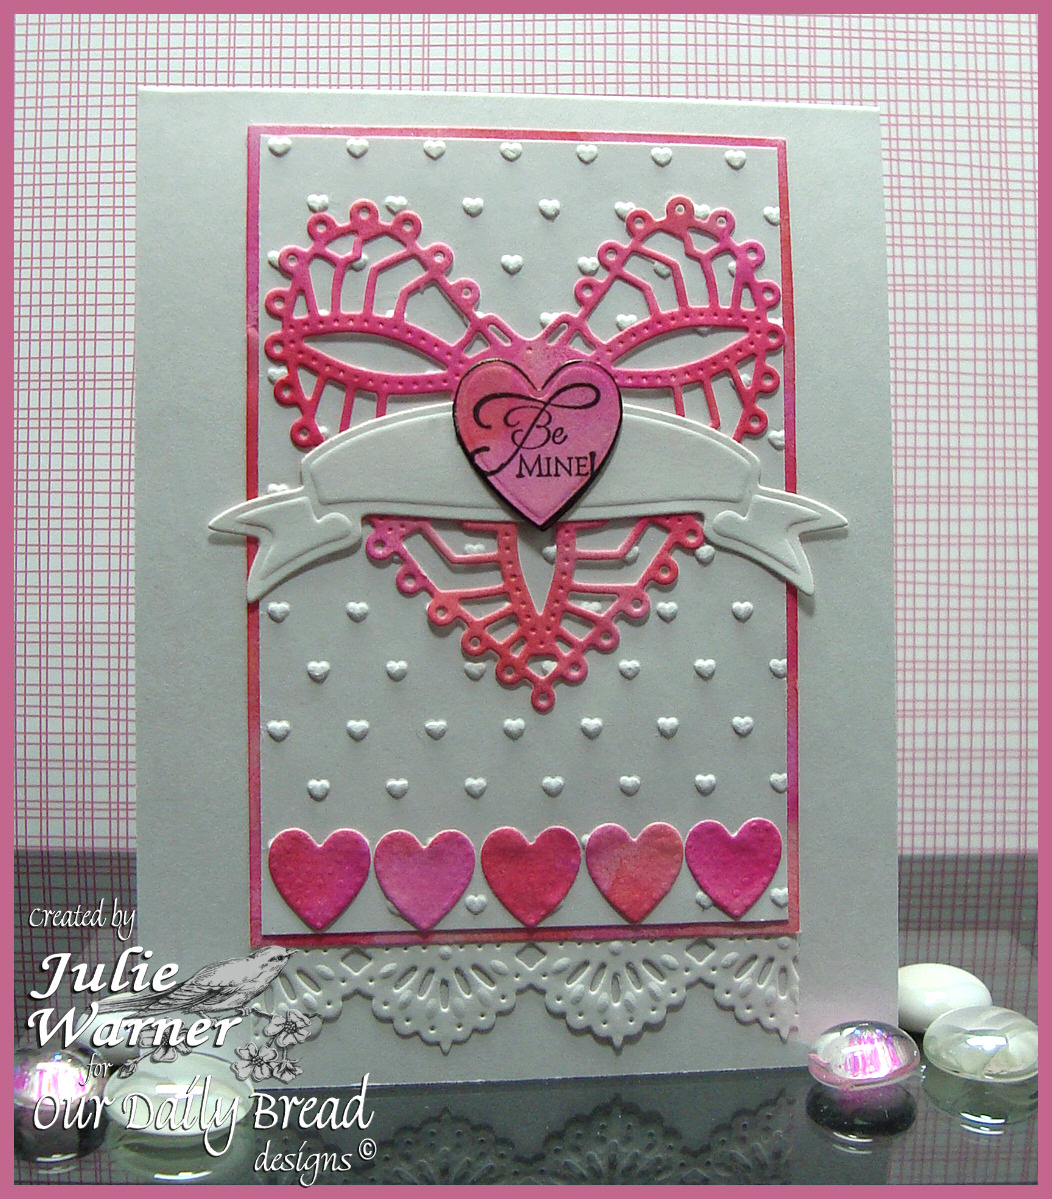 Stamps - Our Daily Bread Designs Be Mine - ODBD Custom Ornate Hearts Die, ODBD Custom Beautiful Borders Dies